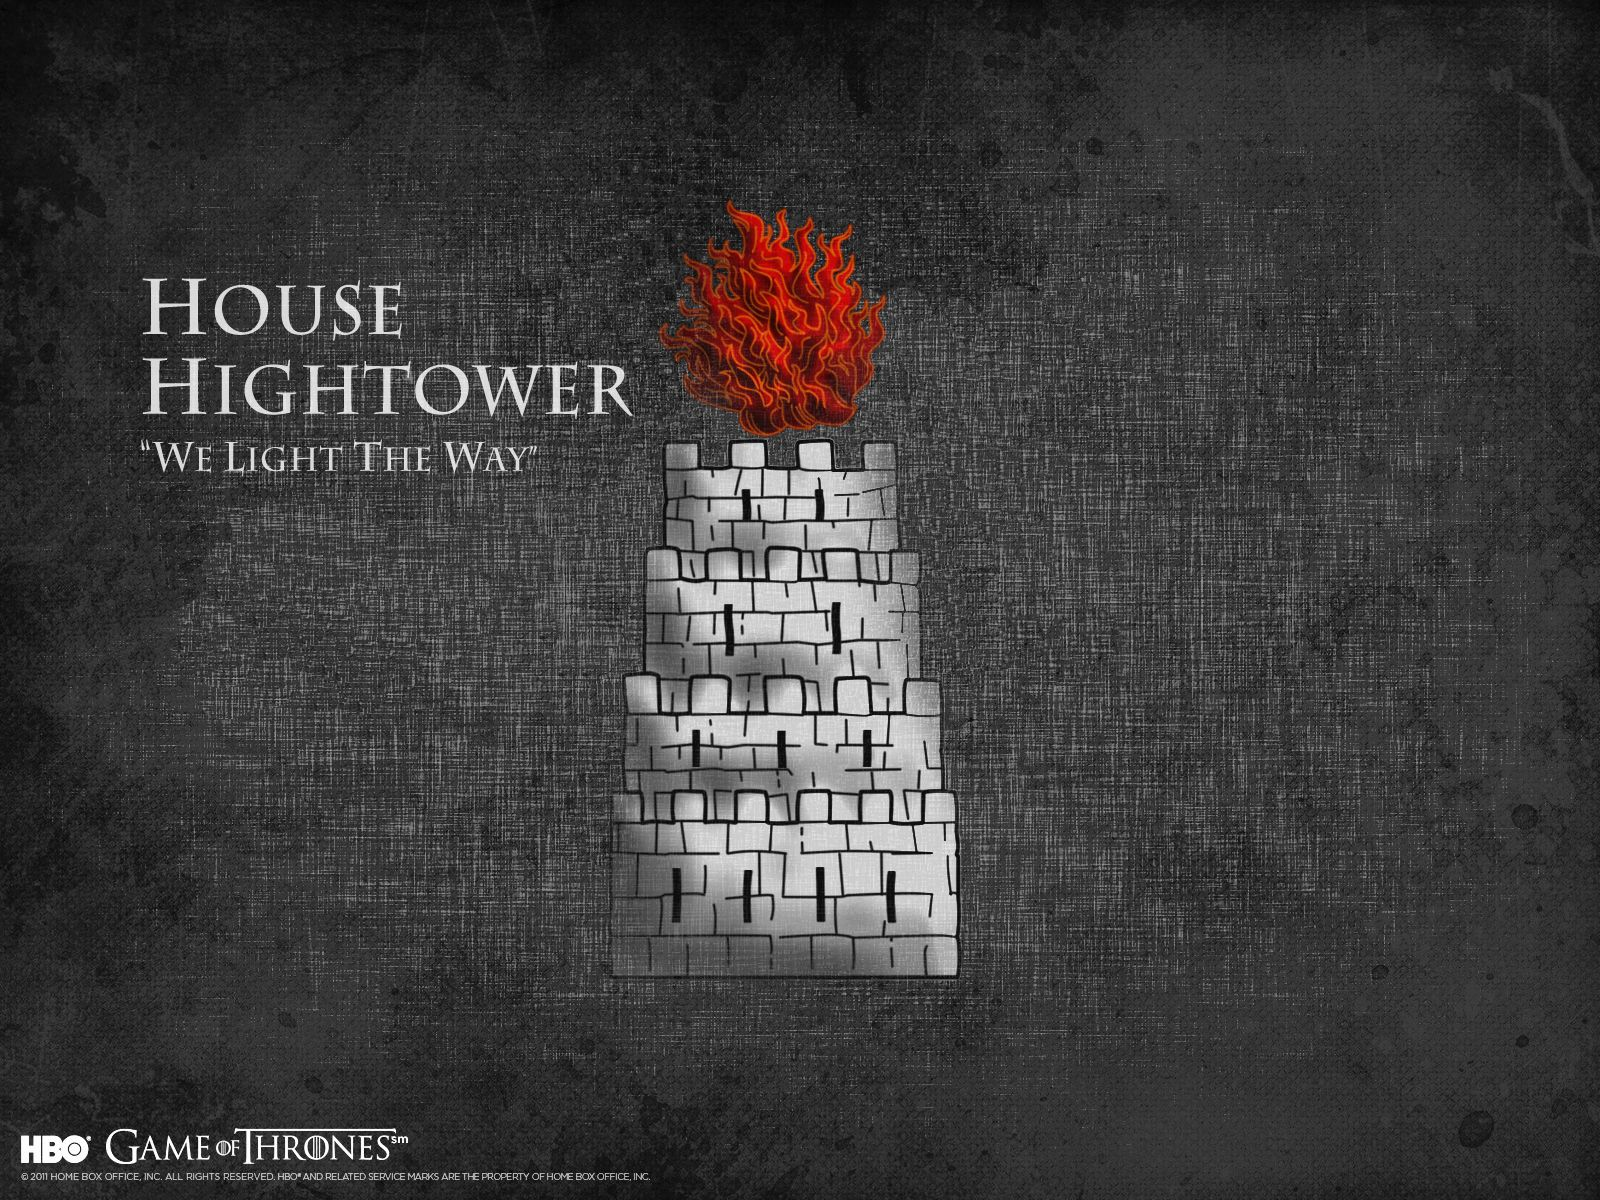 house hightower we light the way the game of thrones pinterest gaming and songs. Black Bedroom Furniture Sets. Home Design Ideas